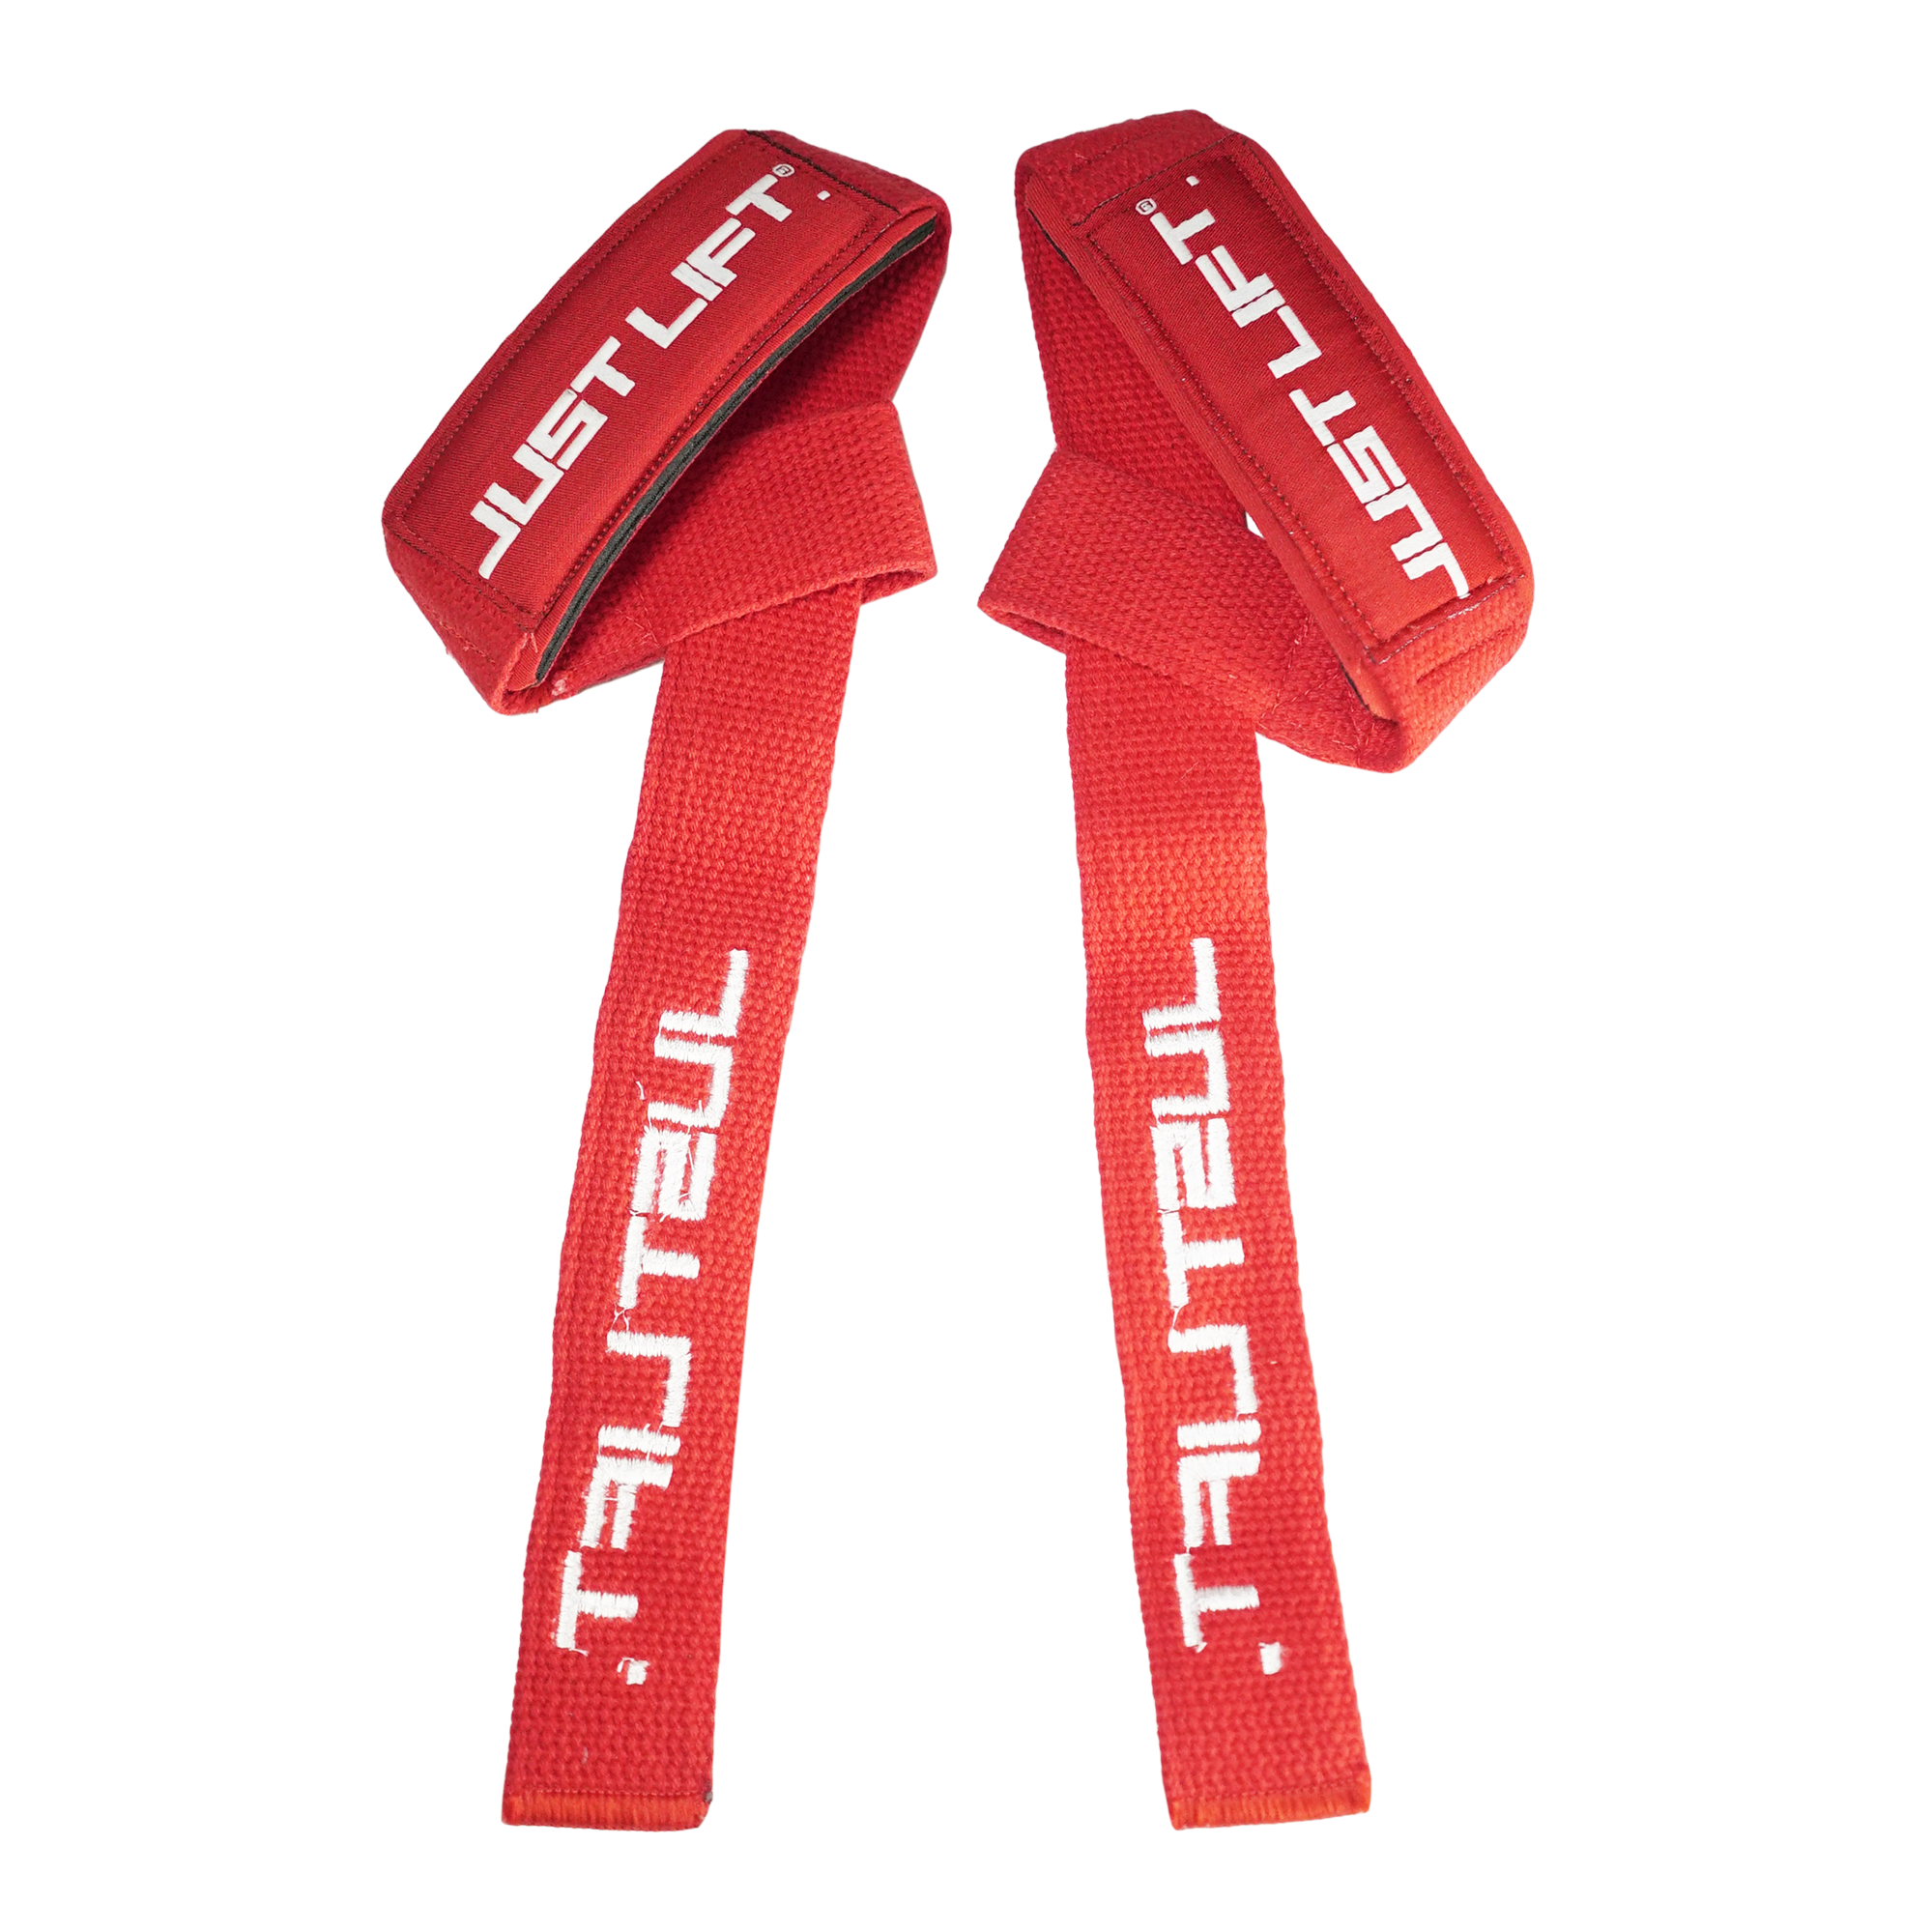 Just Lift. Fury Padded Lifting Straps